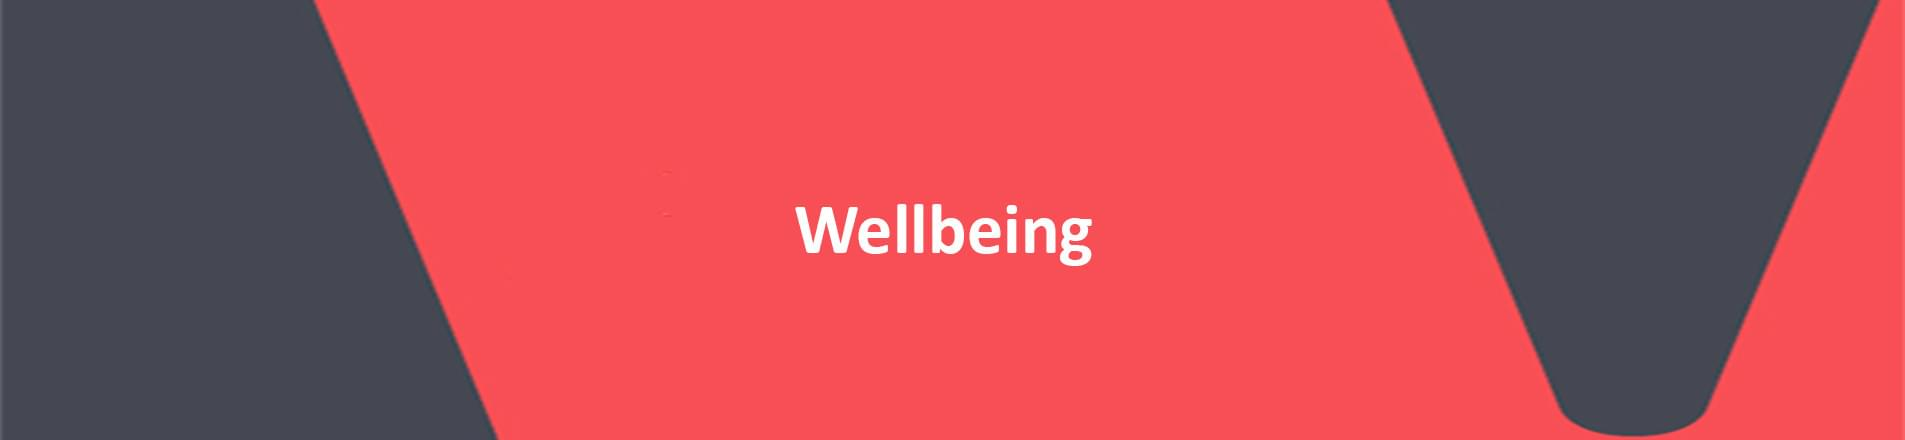 red banner with white text reading wellbeing